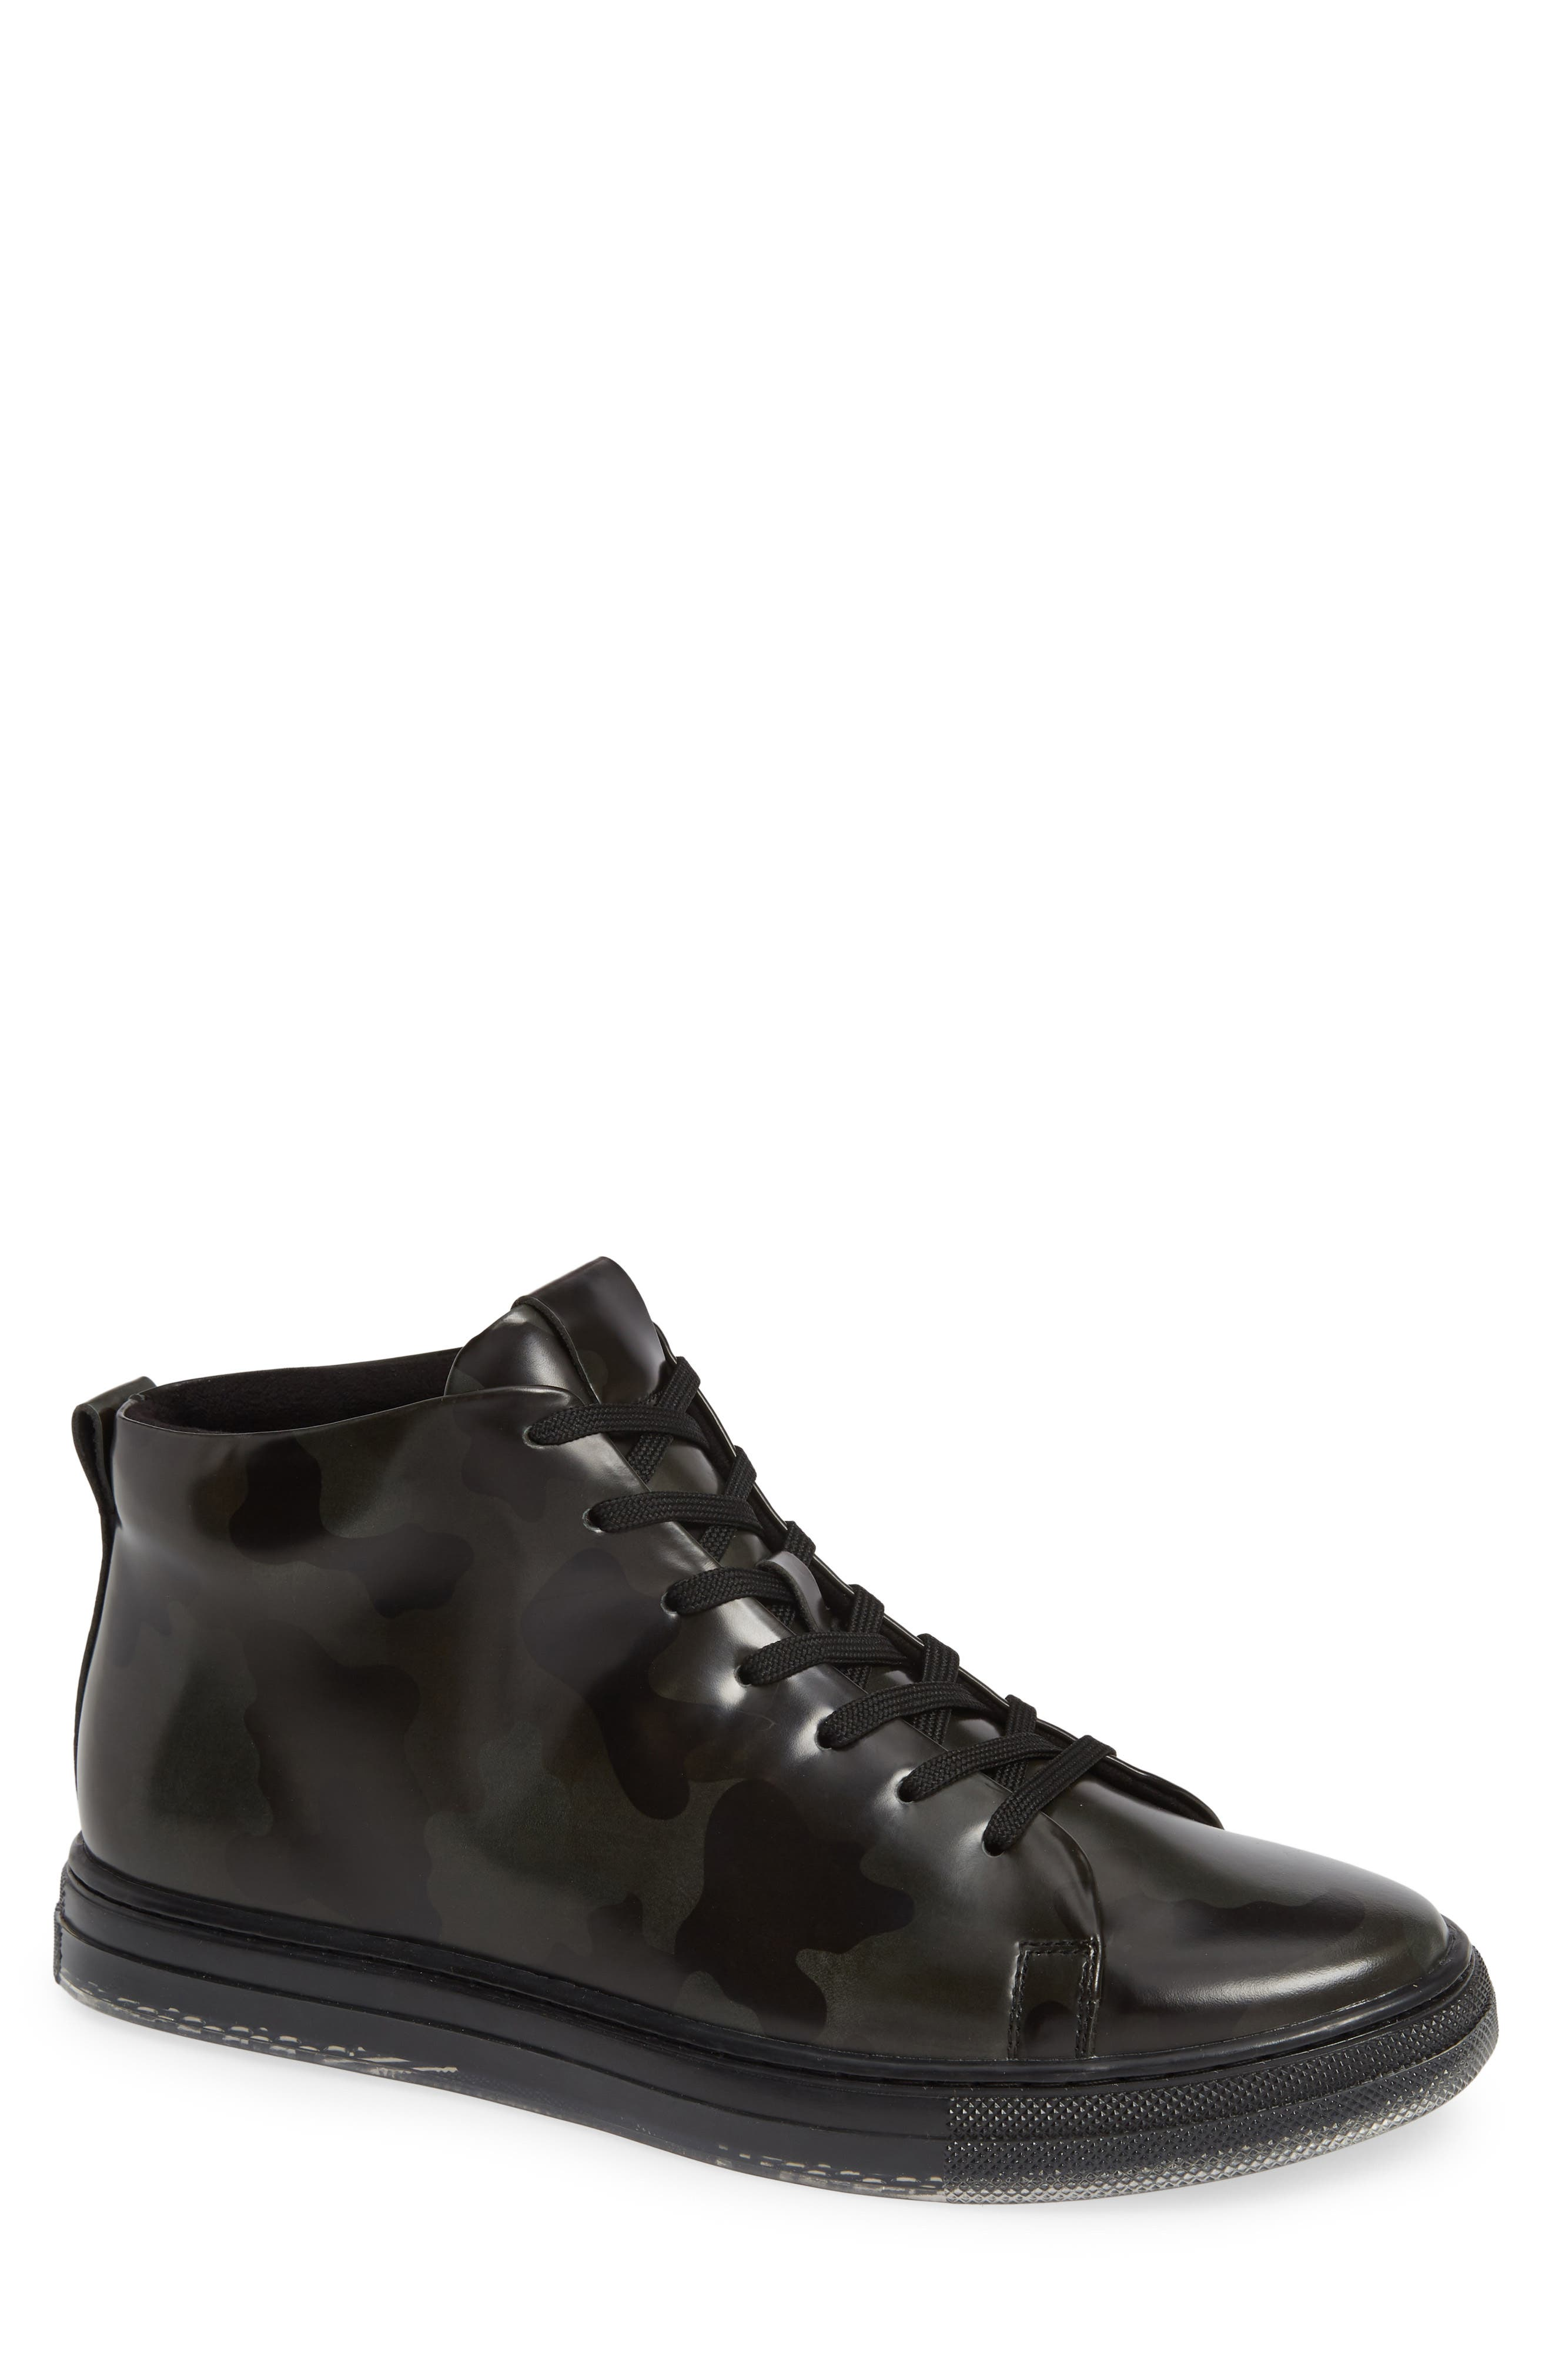 KENNETH COLE NEW YORK Kenneth Cole Colvin Camo High Top Sneaker, Main, color, OLIVE CAMO LEATHER